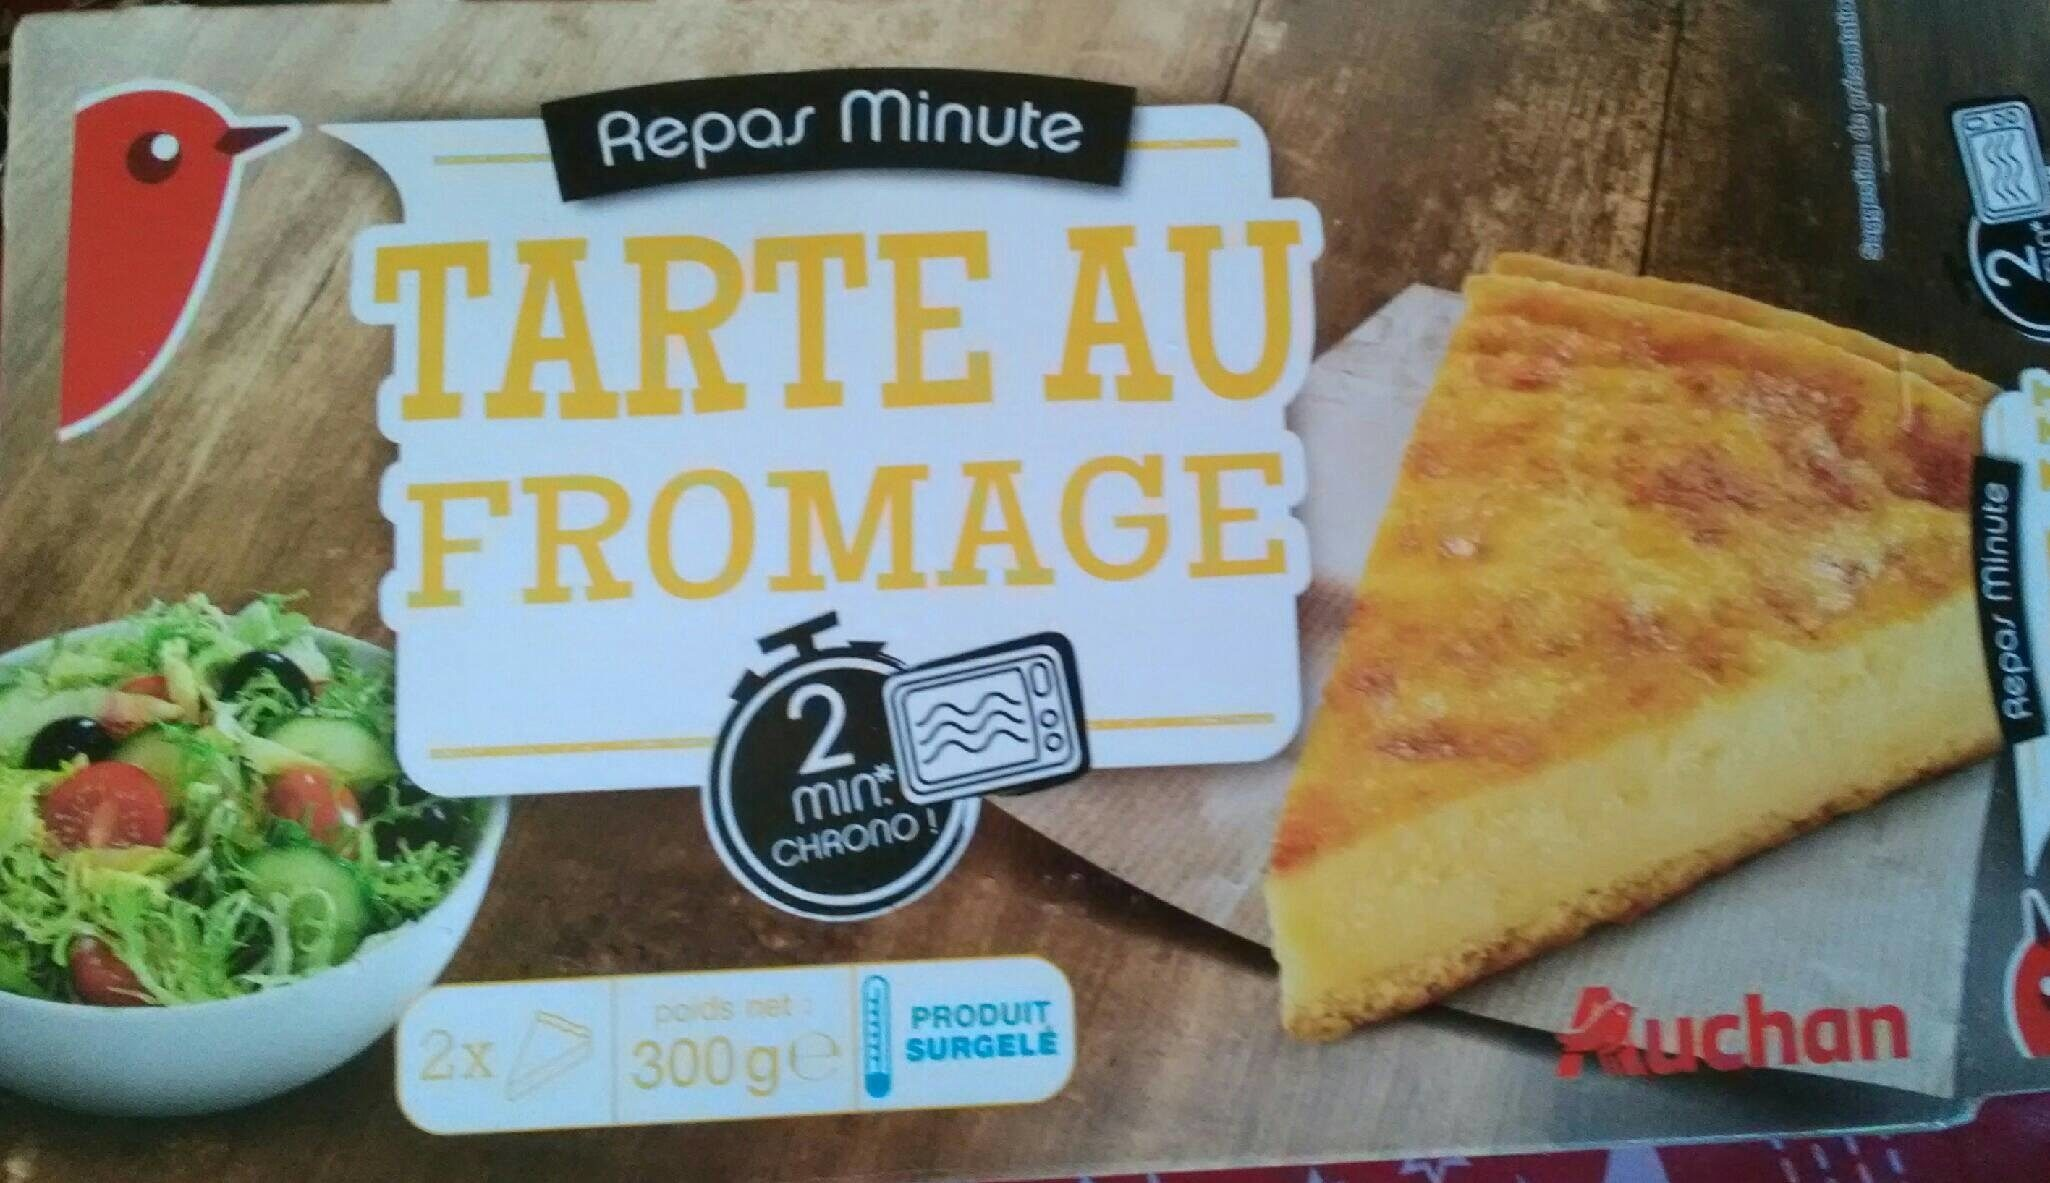 Tarte au fromage - Product